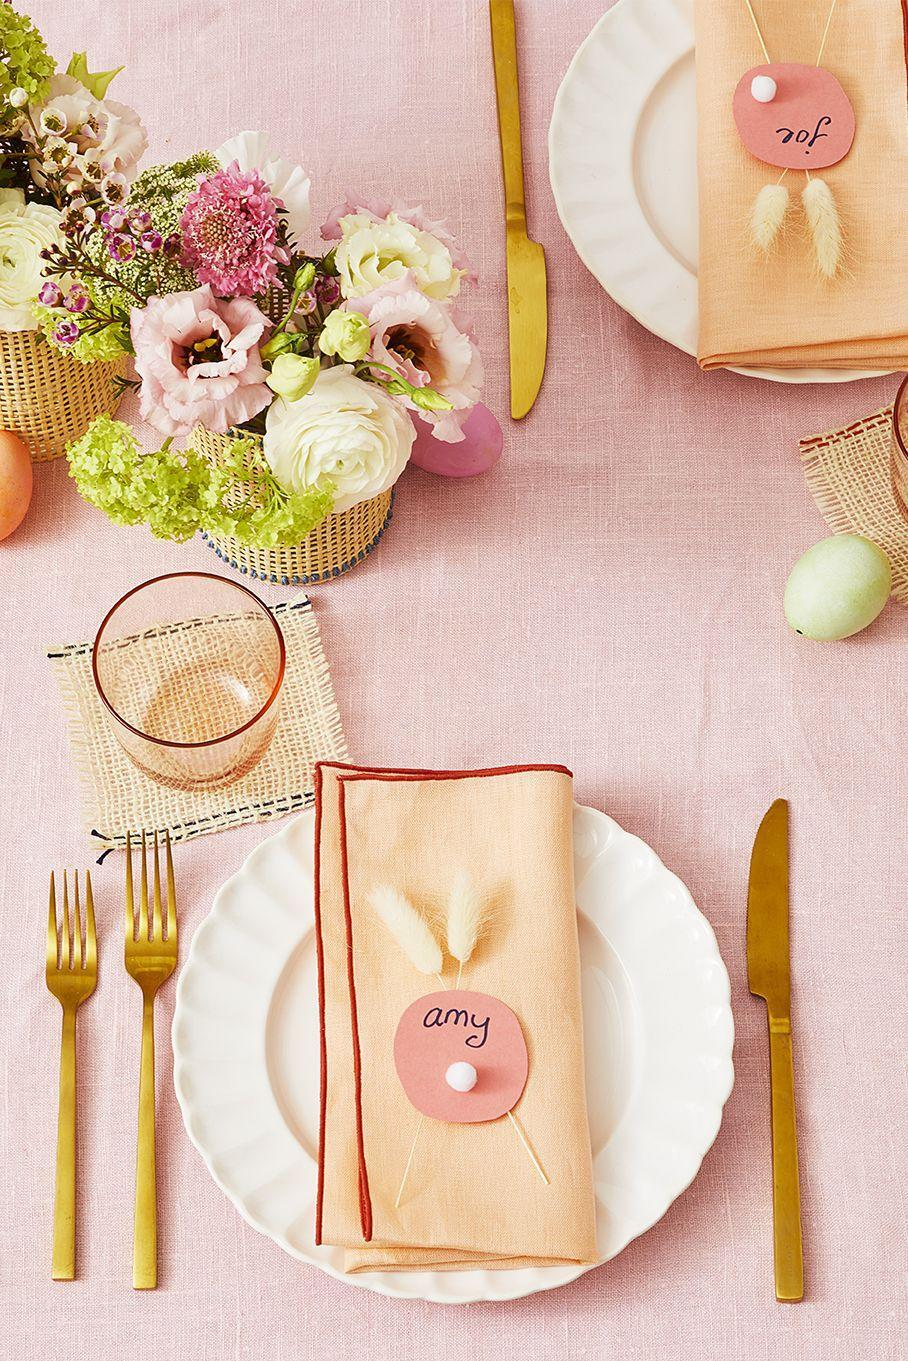 """<p>Make a cardstock circle for each of your guests and glue on a pom-pom bunny tail. Criss-cross two faux flowers to create cute bunny ears. Rose gold silverware and pink linens add a festive spring touch. </p><p><strong>RELATED:</strong> <a href=""""https://www.goodhousekeeping.com/holidays/easter-ideas/g711/easter-spring-crafts/"""" rel=""""nofollow noopener"""" target=""""_blank"""" data-ylk=""""slk:44 Cheerful Easter Crafts That Kids Will Totally Love"""" class=""""link rapid-noclick-resp"""">44 Cheerful Easter Crafts That Kids Will Totally Love</a></p>"""